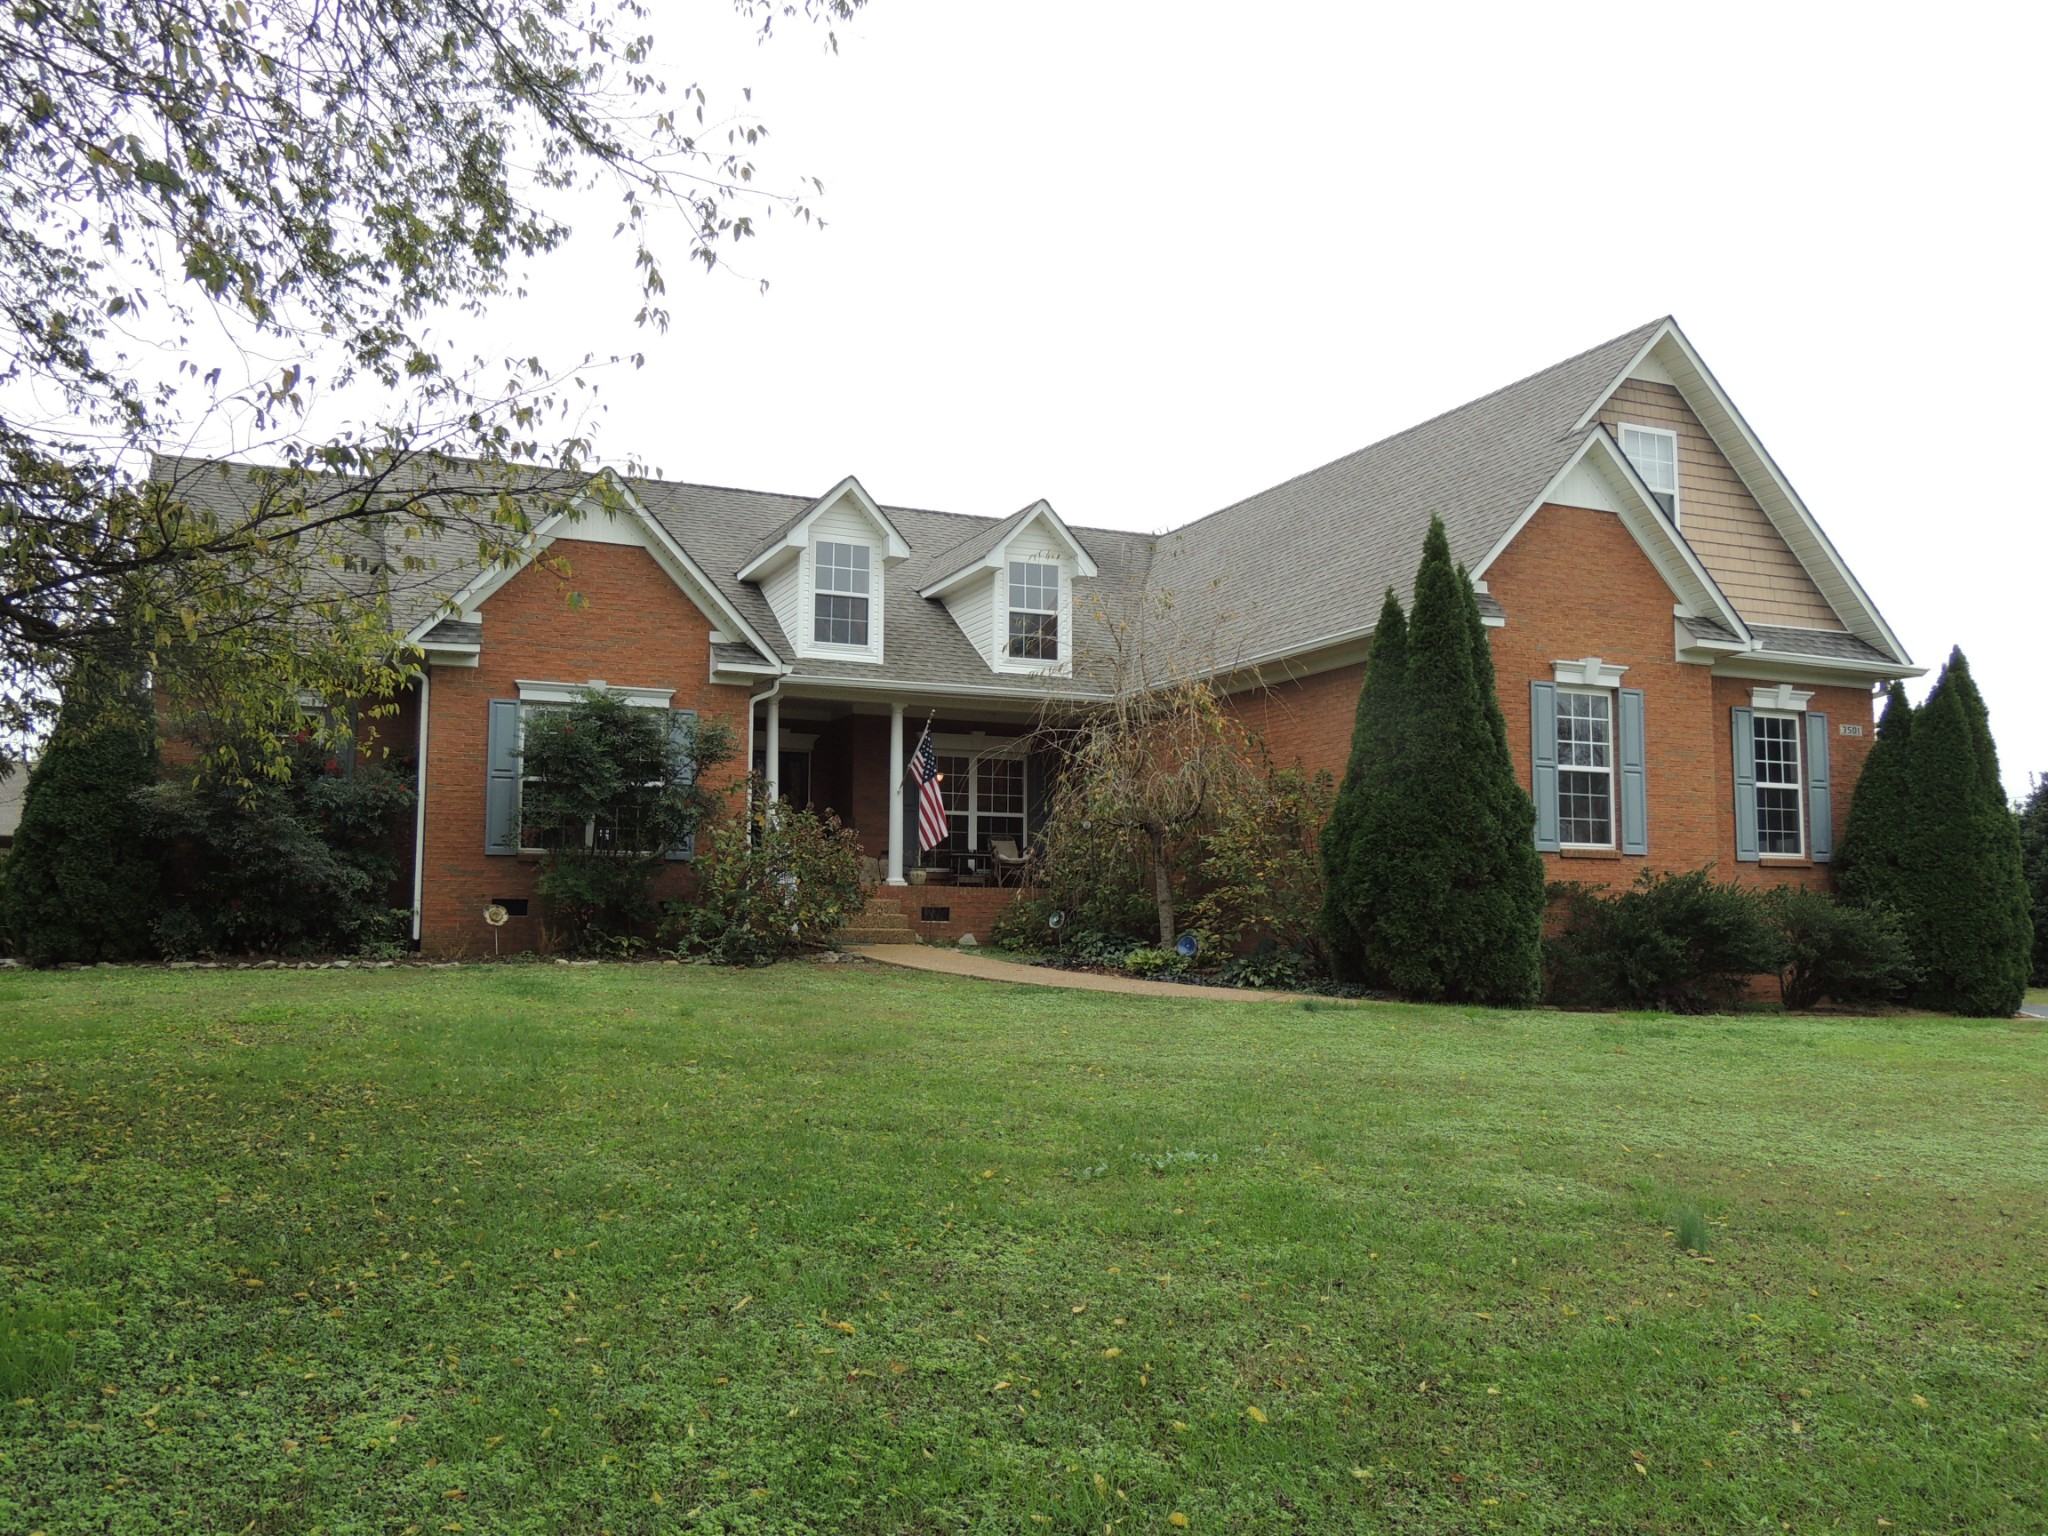 Beautiful Brick Home on over an acre with great views. 4th bedroom currently is being used as a home office. Only 10 minutes to 840 or the Crossings Shopping Plaza, 20 minutes to Franklin or Columbia. This one won't last long!